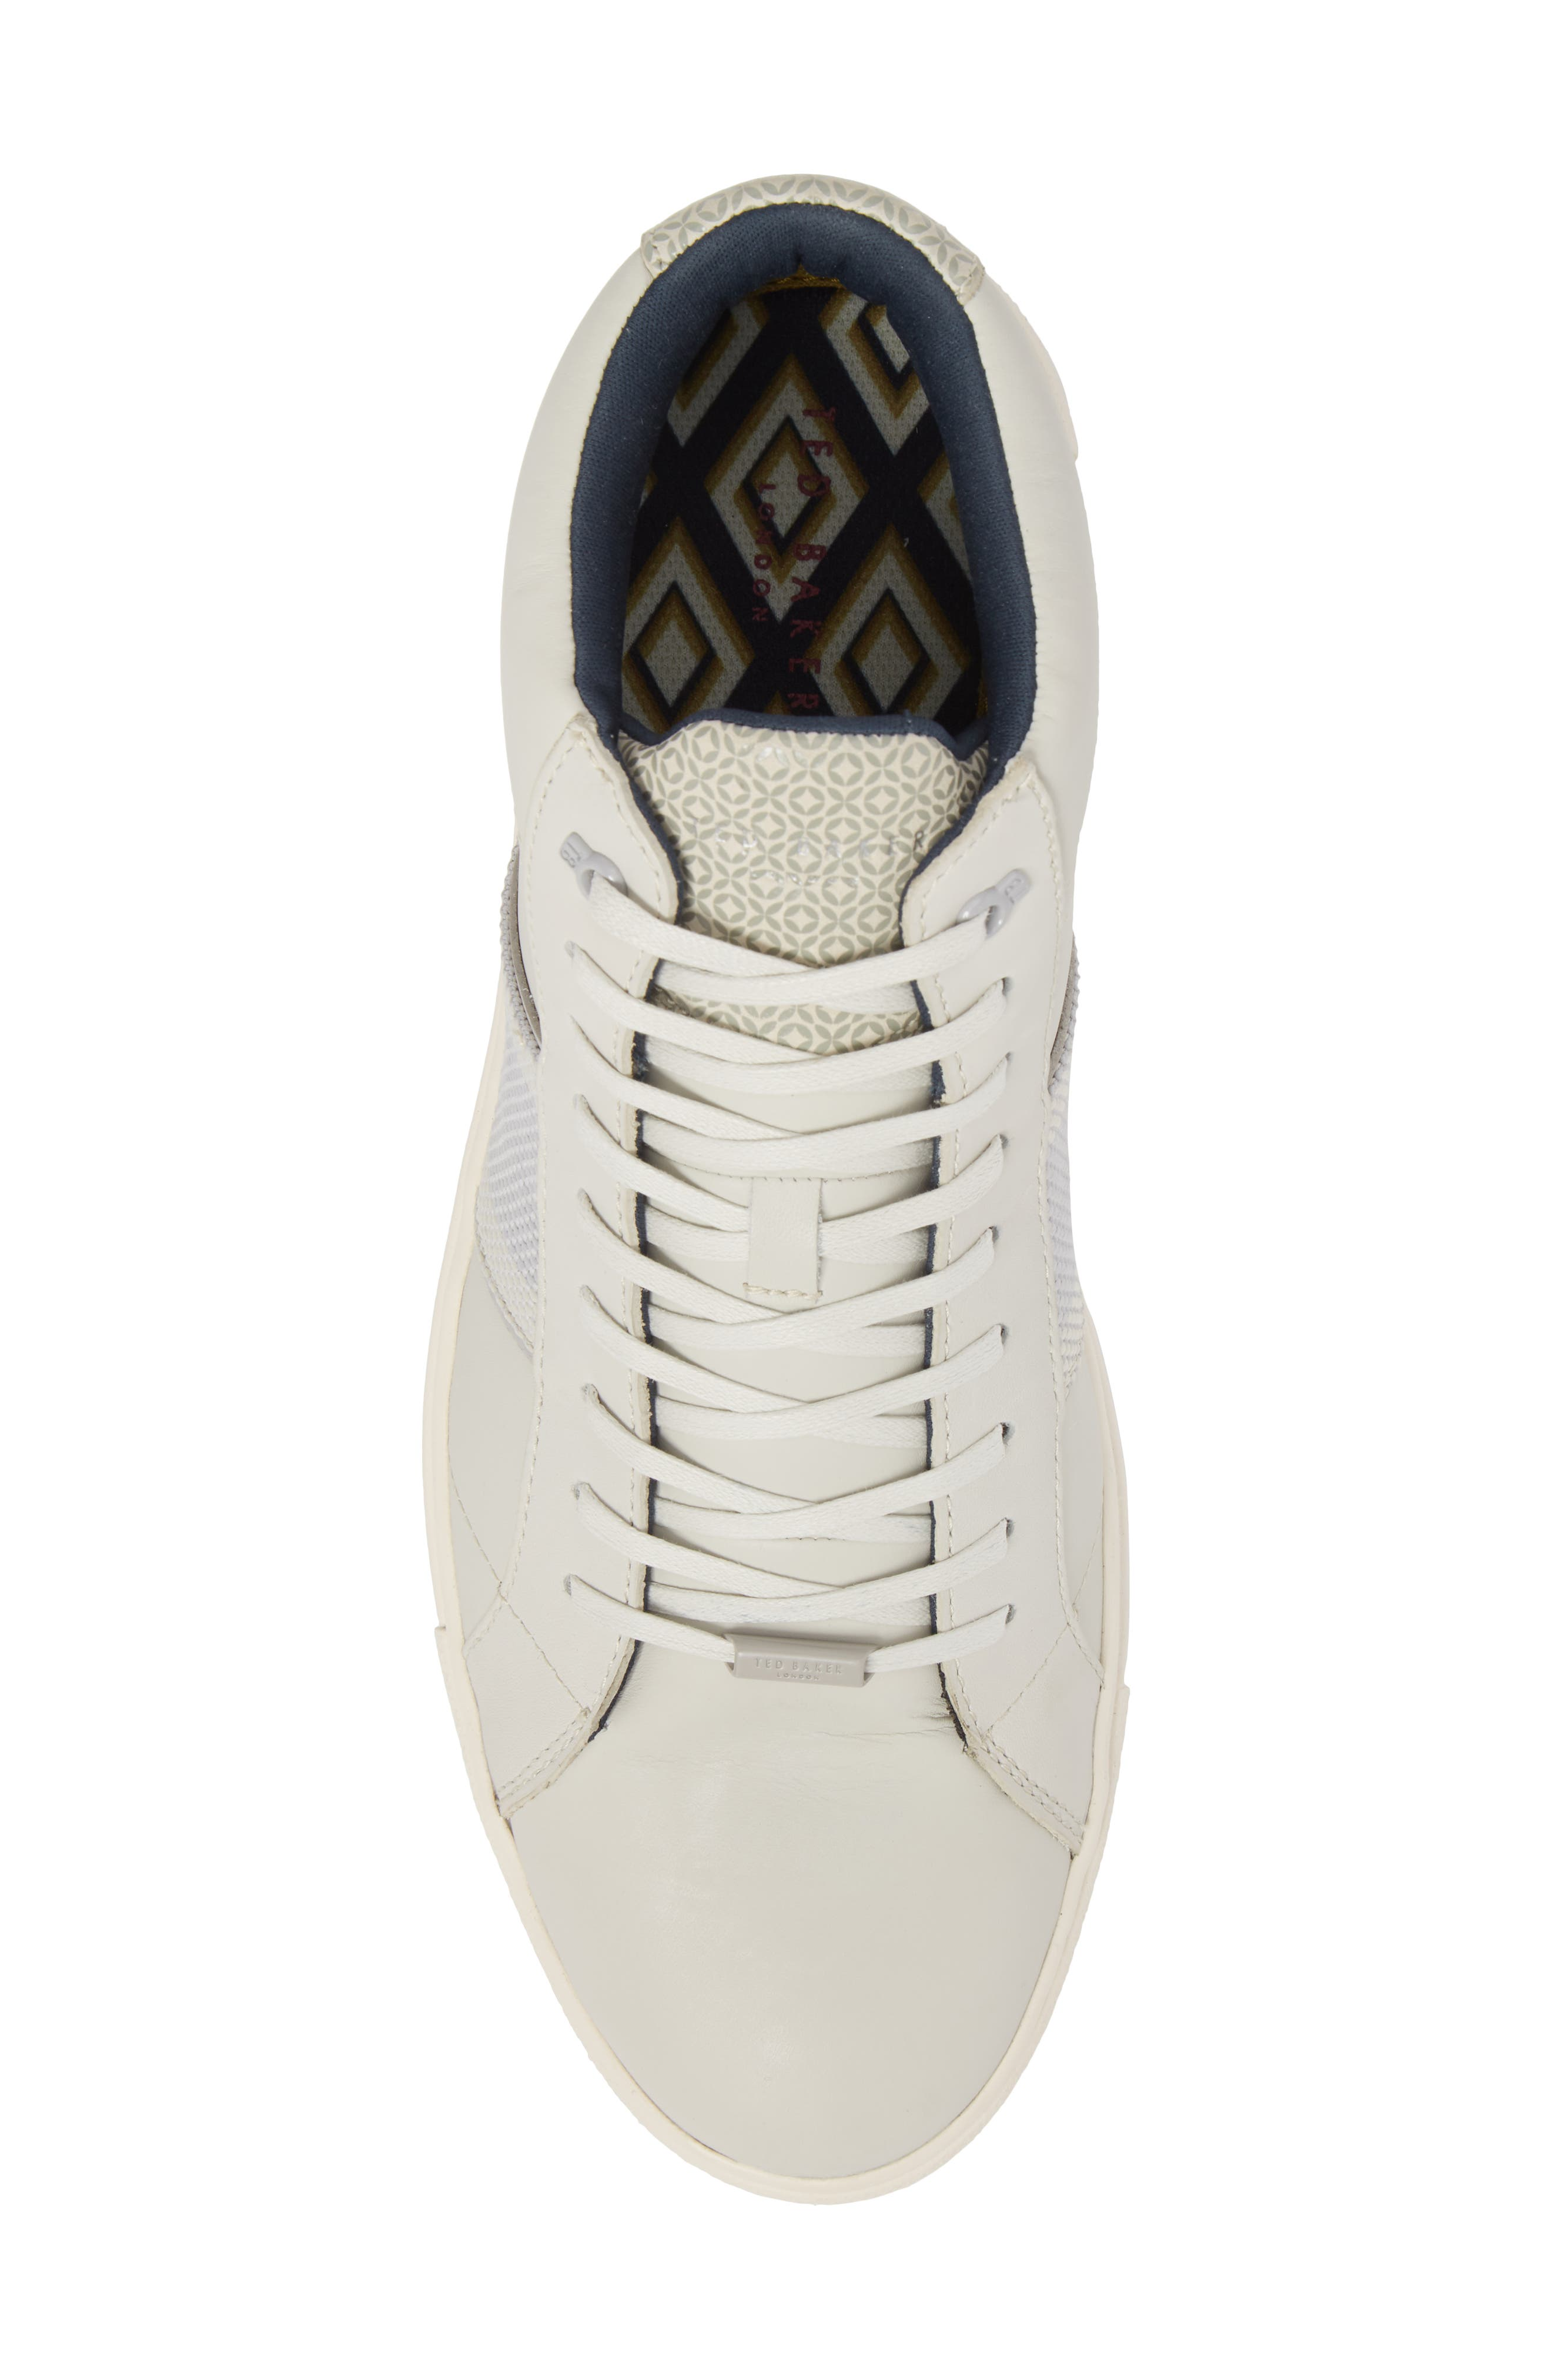 Cruuw High Top Sneaker,                             Alternate thumbnail 5, color,                             WHITE LEATHER